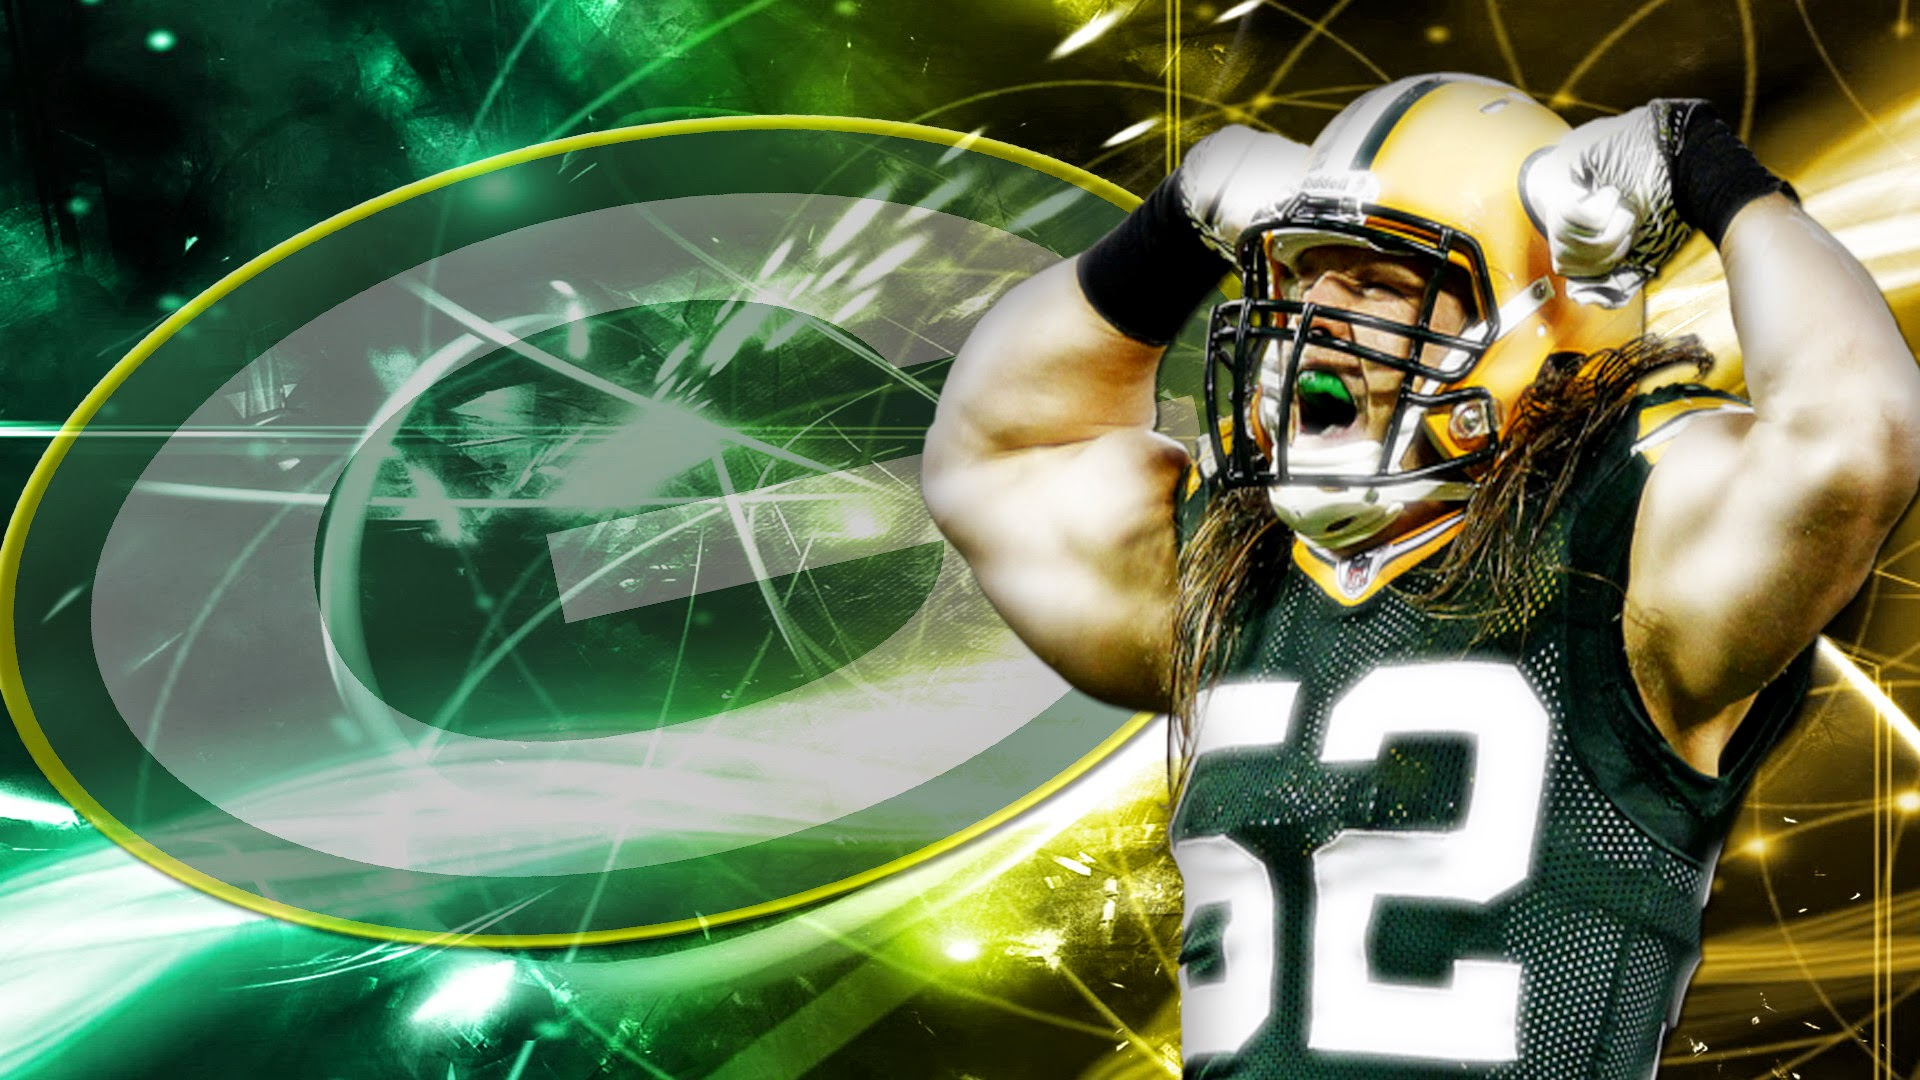 green-bay-packers-computer-Green-Bay-Packers-HD-Inn-wallpaper-wpc5805549